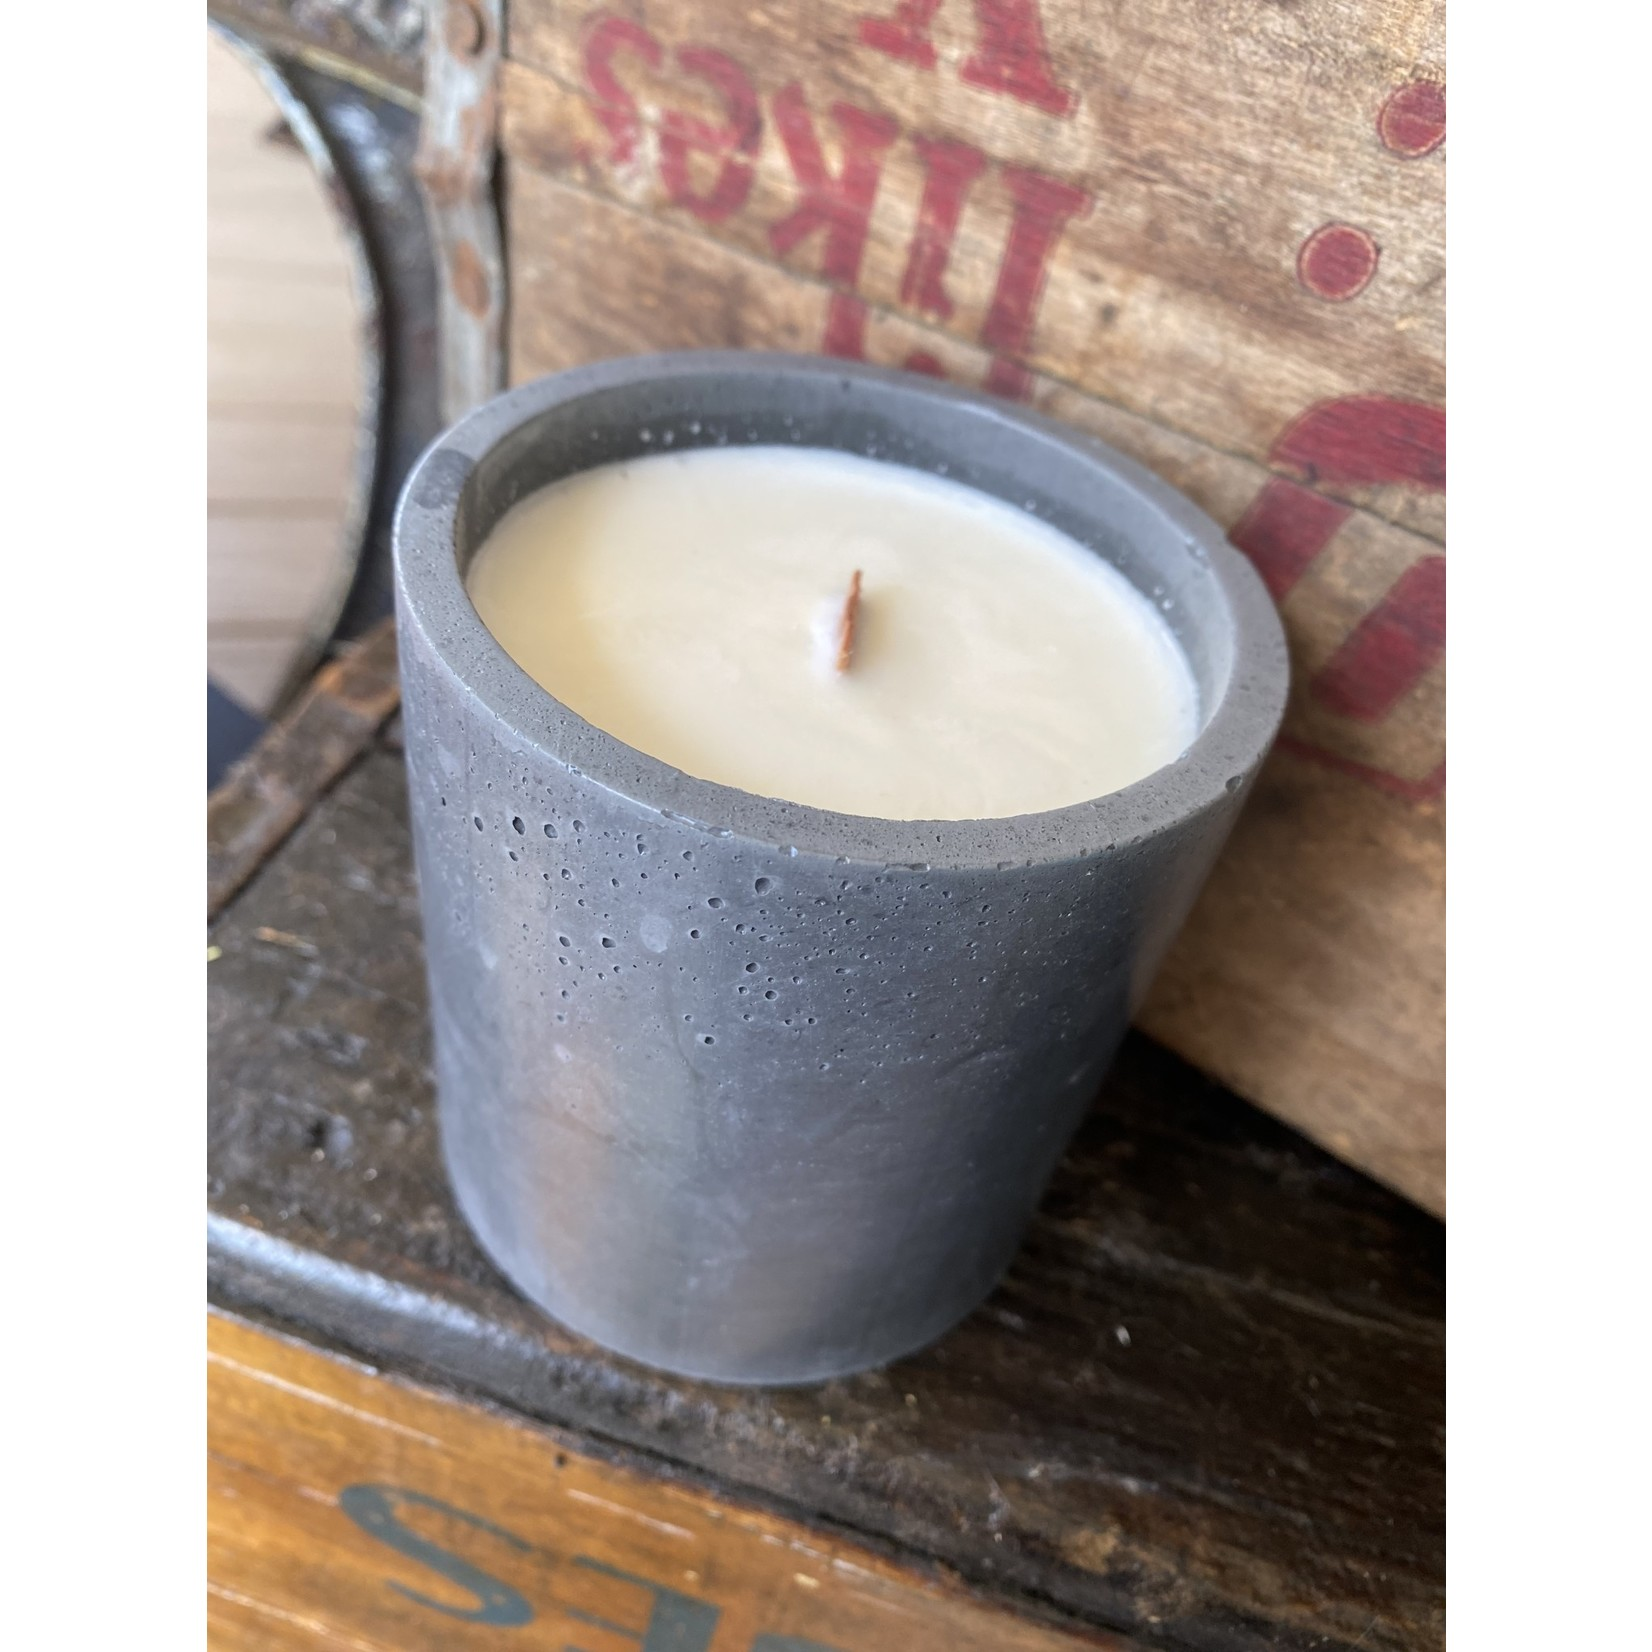 Sable Candle Company Sable Candle Company l sandalwood + amber candle